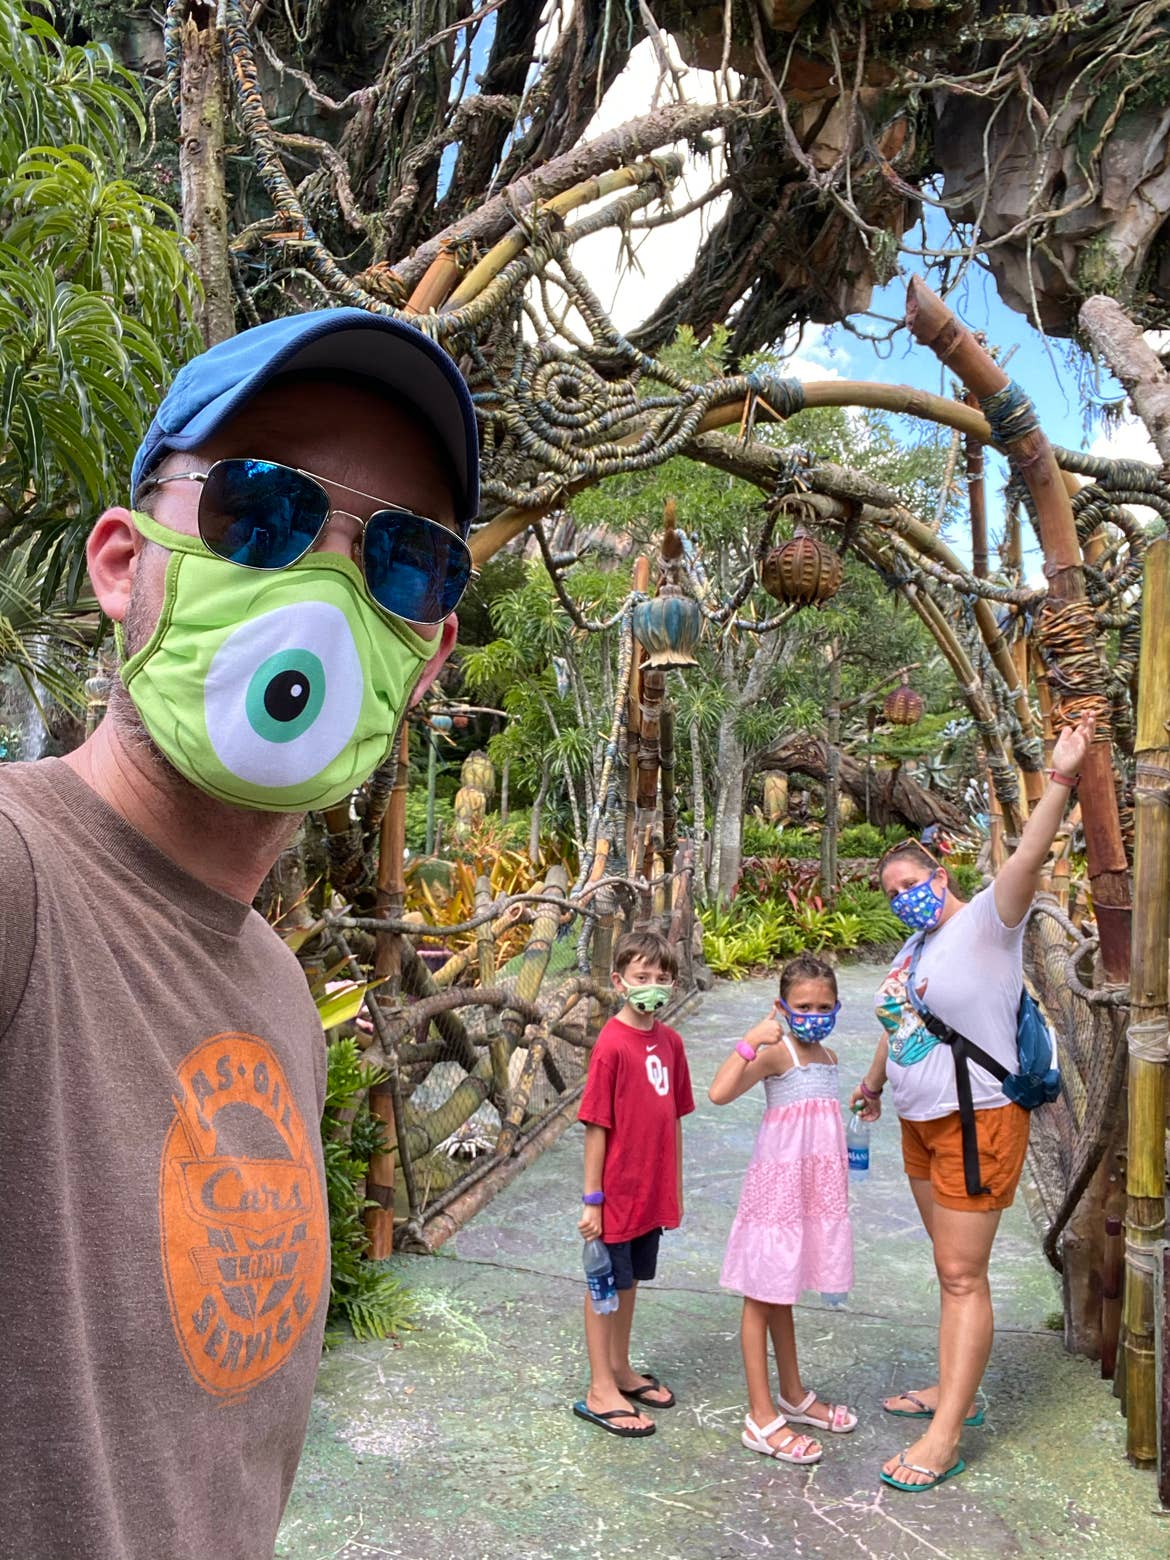 Ben with his family at Animal Kingdom